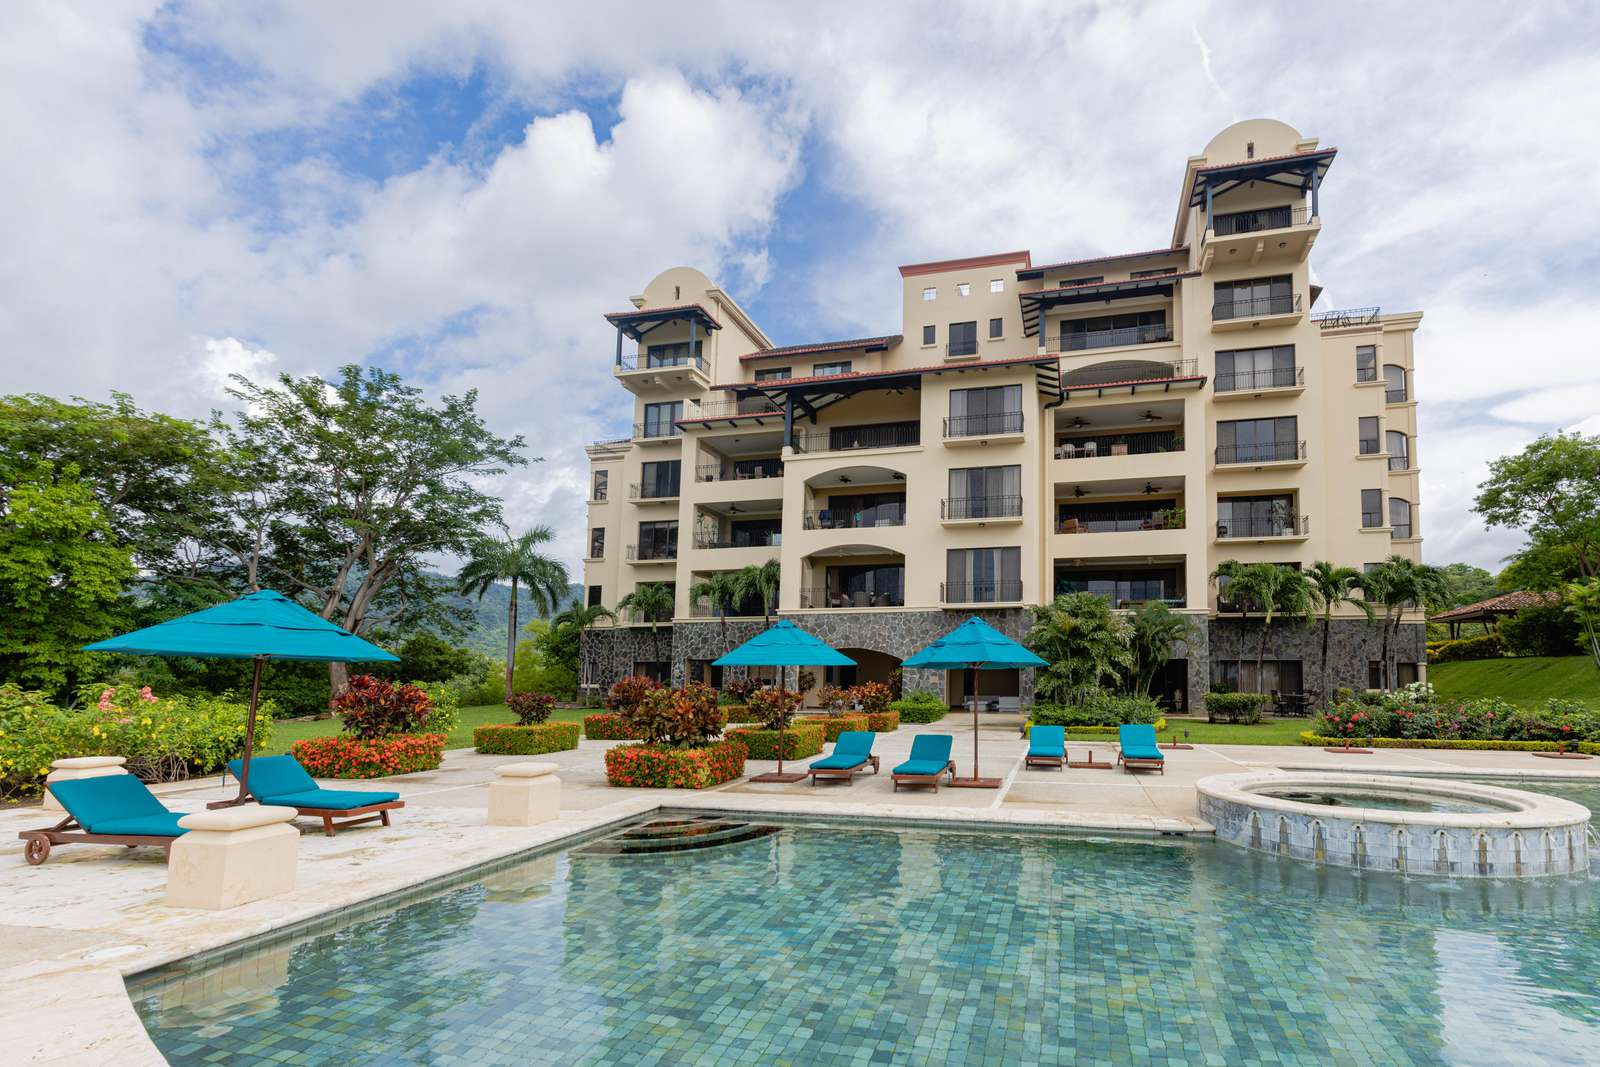 Malinche 112B, a pool level Ocean View condo at Reserva Conchal - property